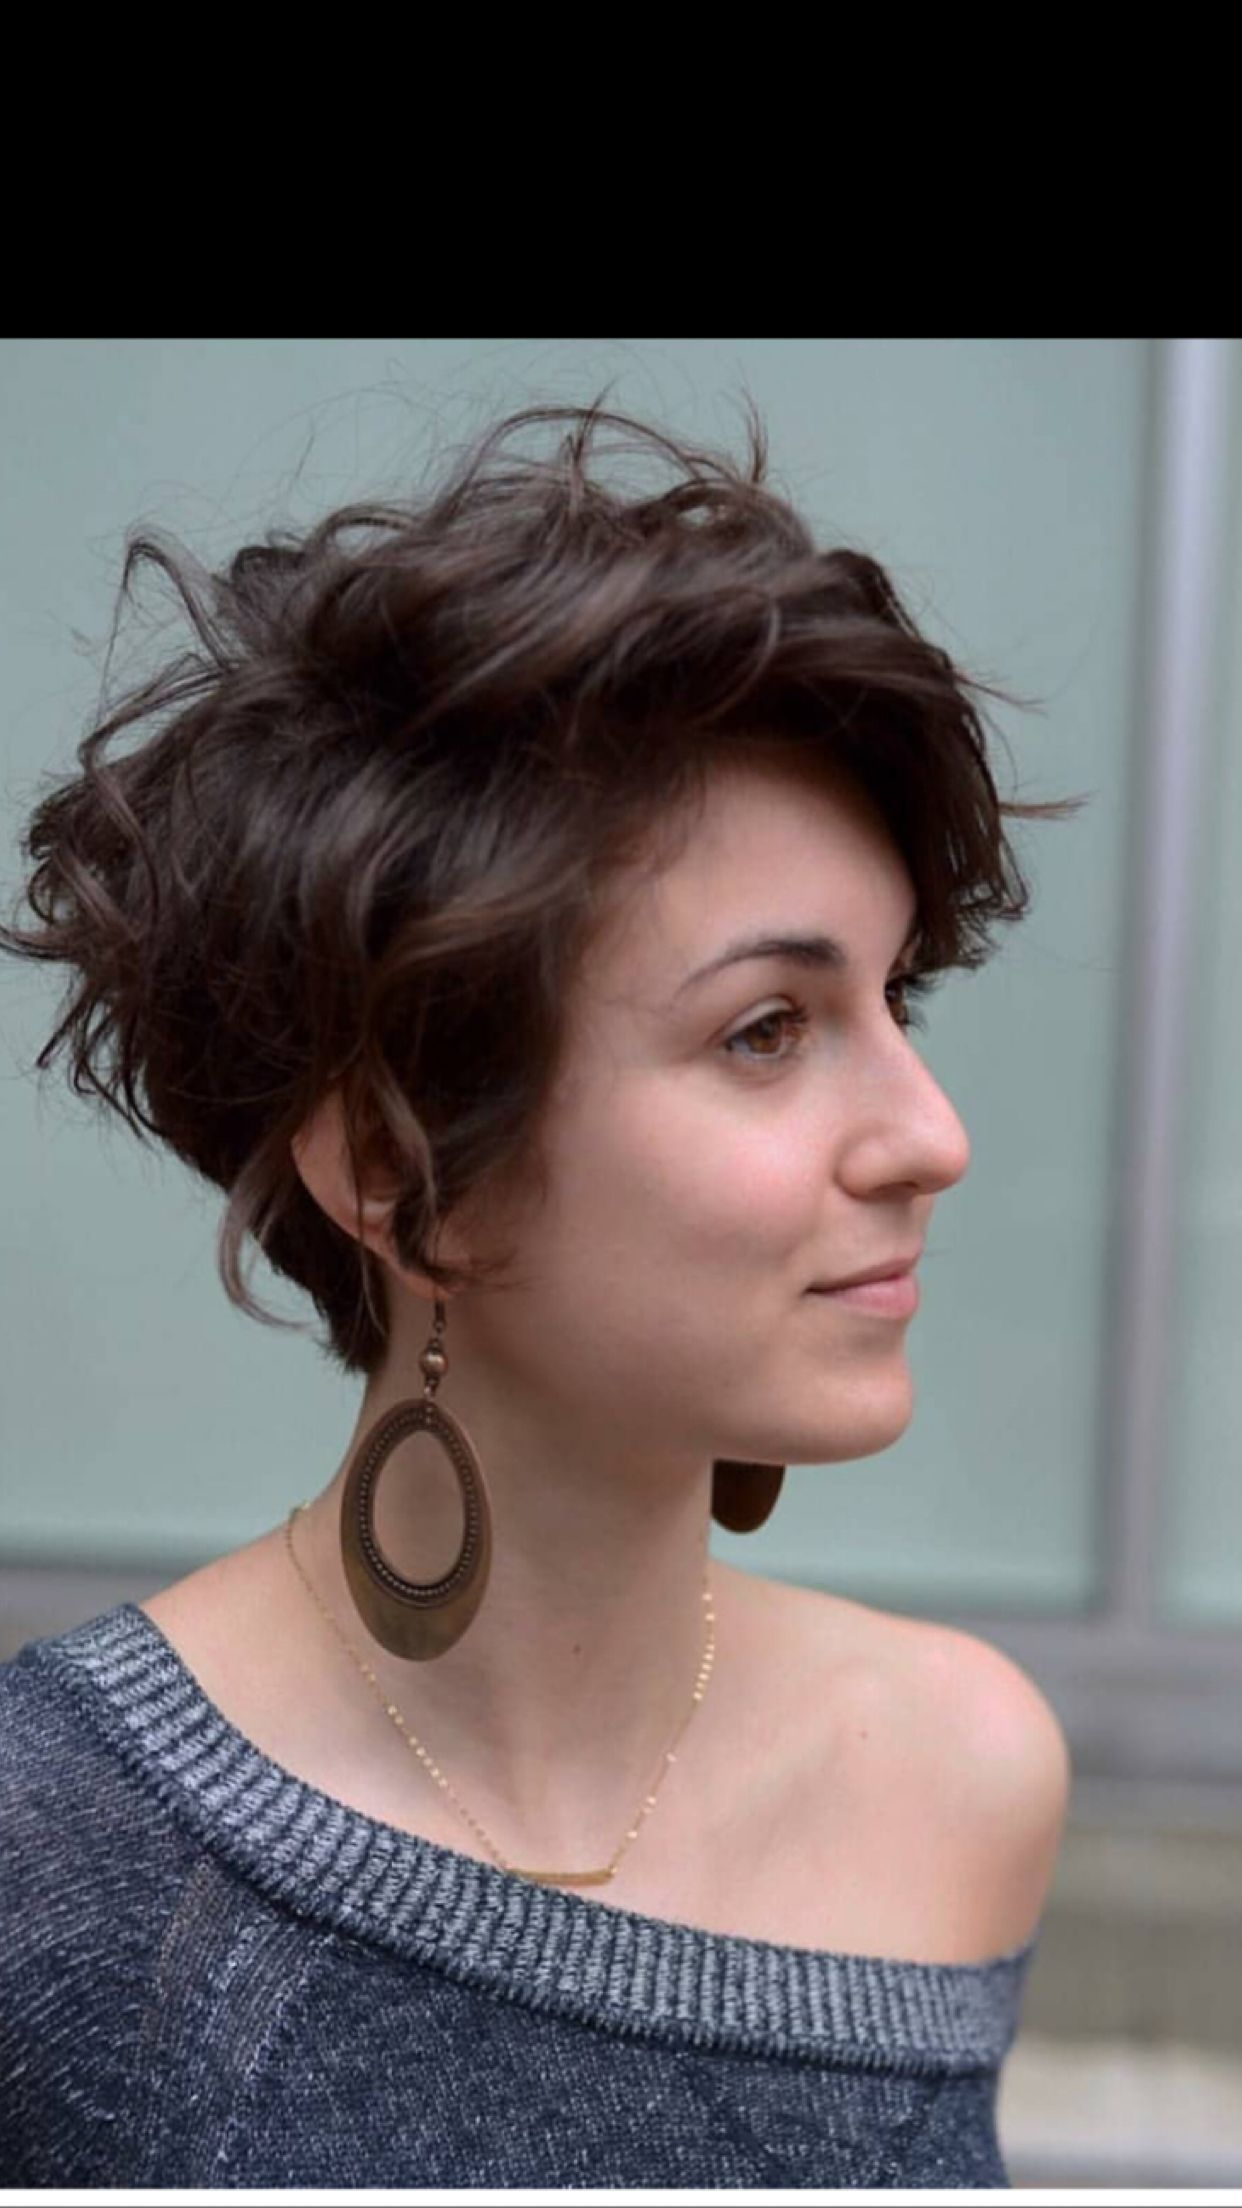 Need to style my hair differently as it grows out, this one looks